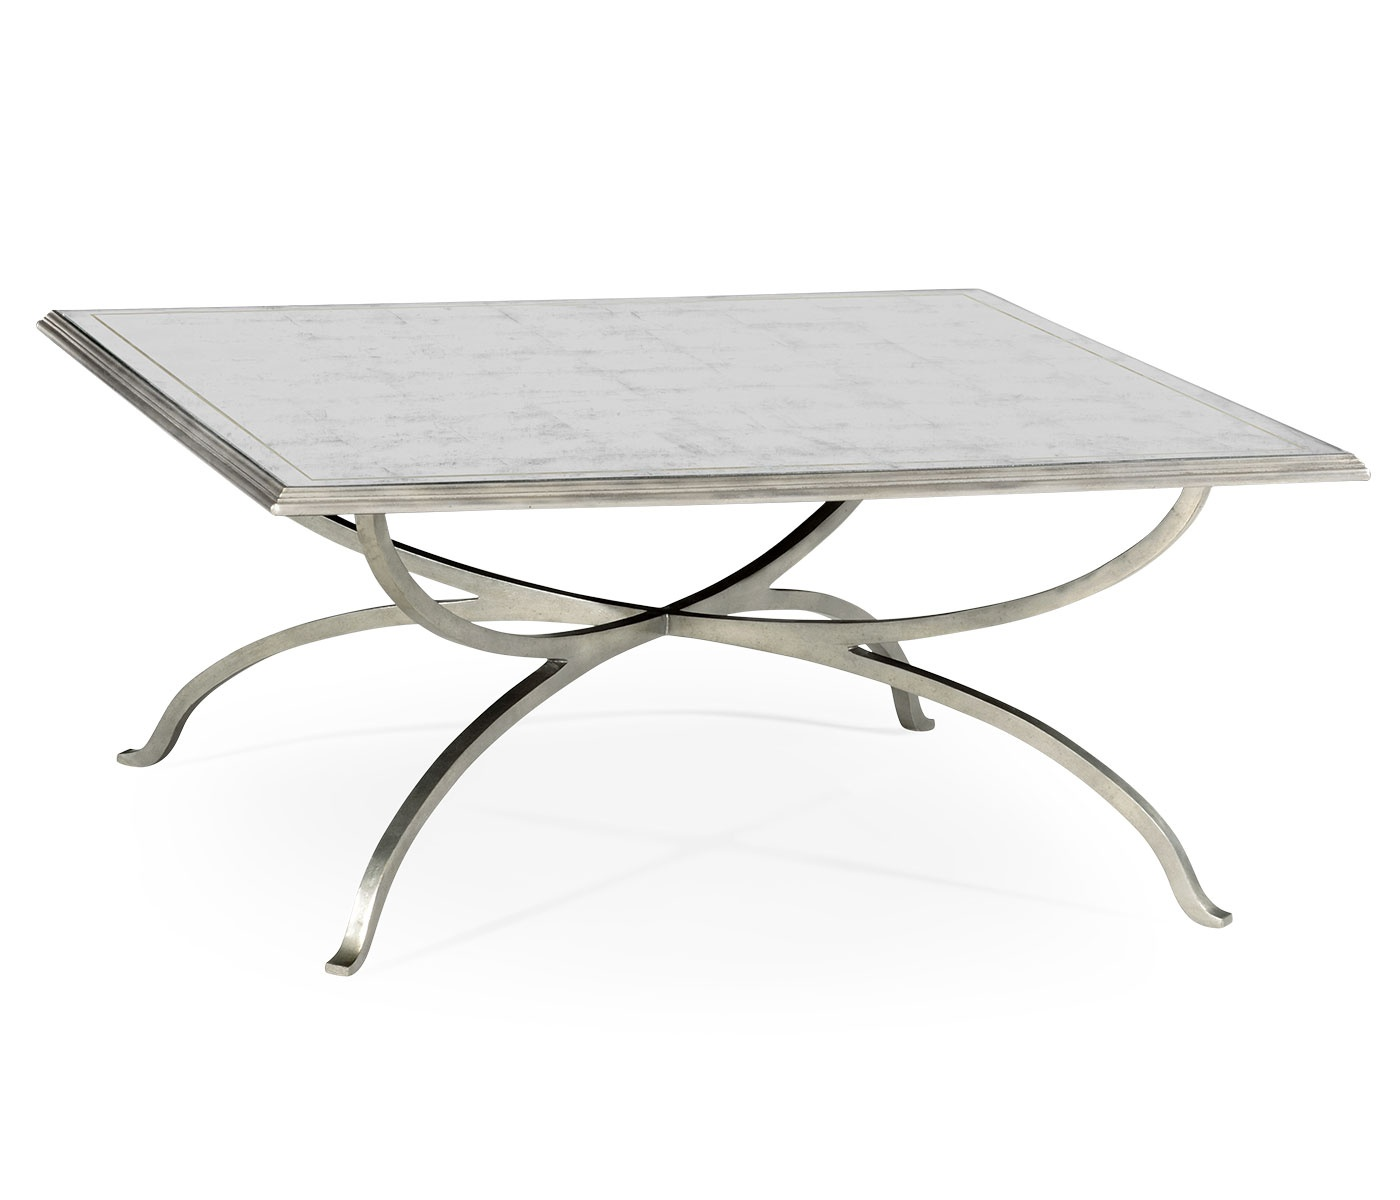 Silver Glass Coffee Table Uk: French Glass Square Coffee Table, Silver